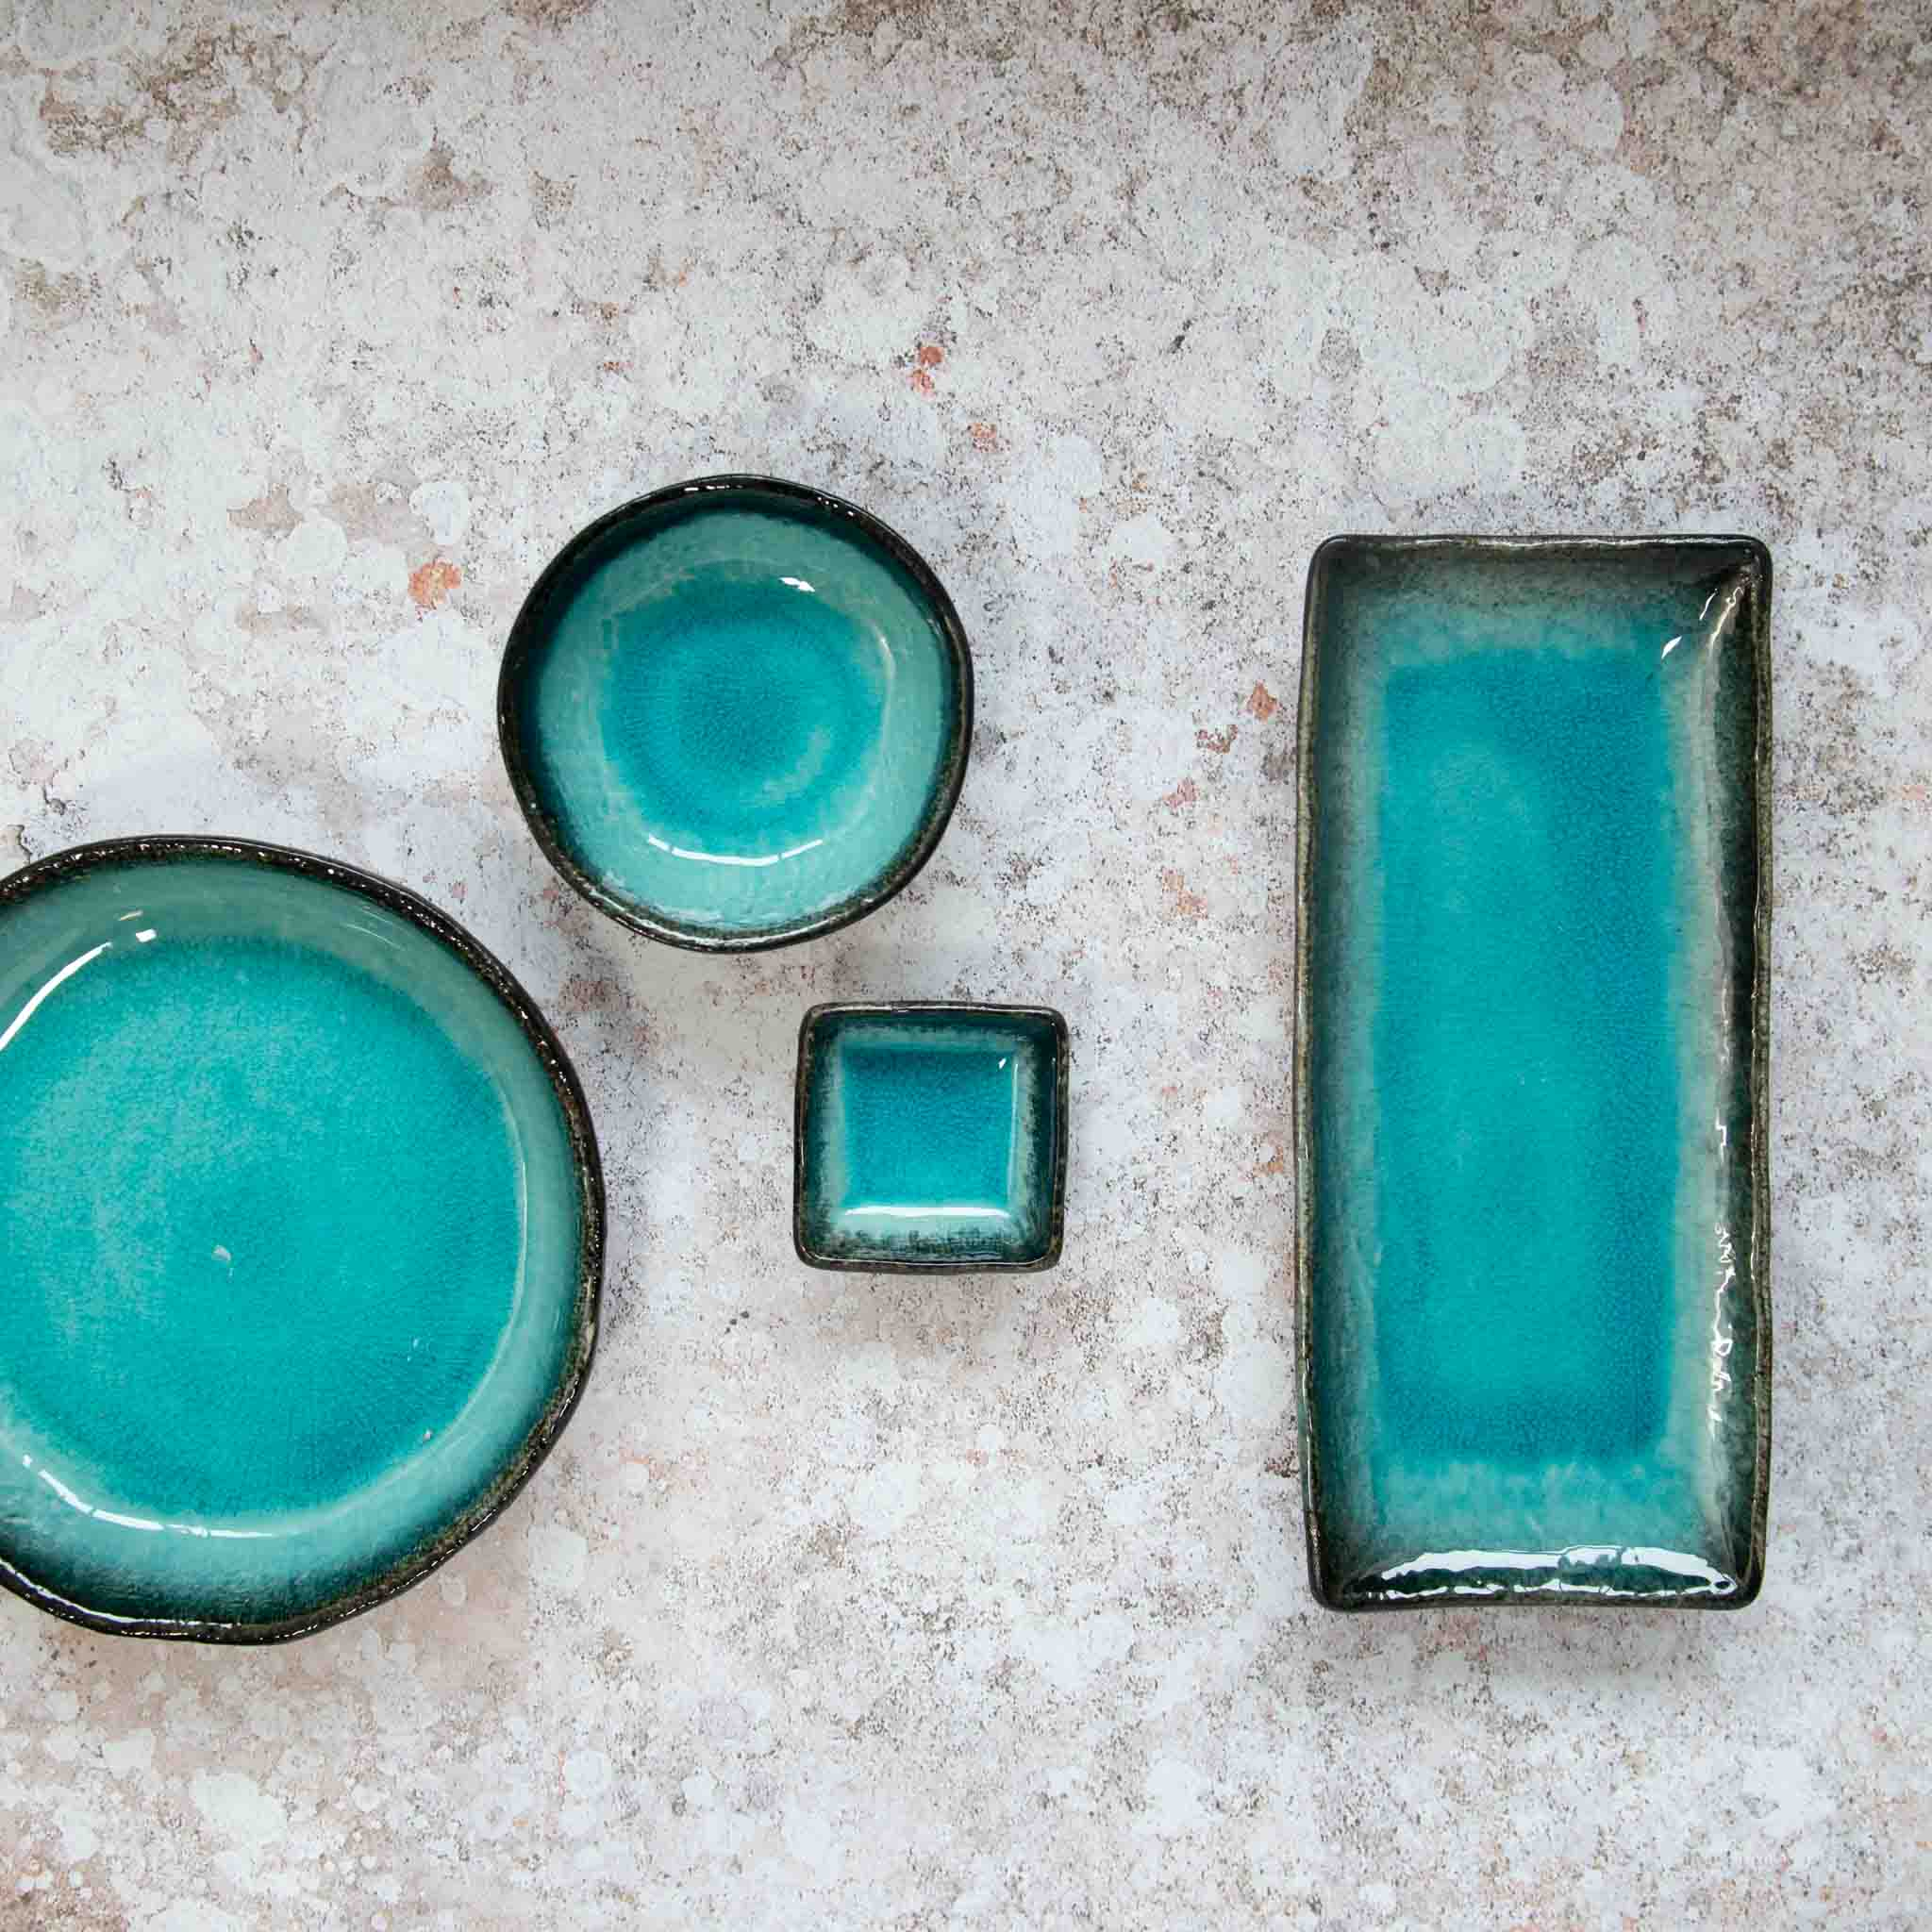 Kiji Stoneware & Ceramics Oblong Turquoise Platter Tableware Japanese Tableware Japanese Food